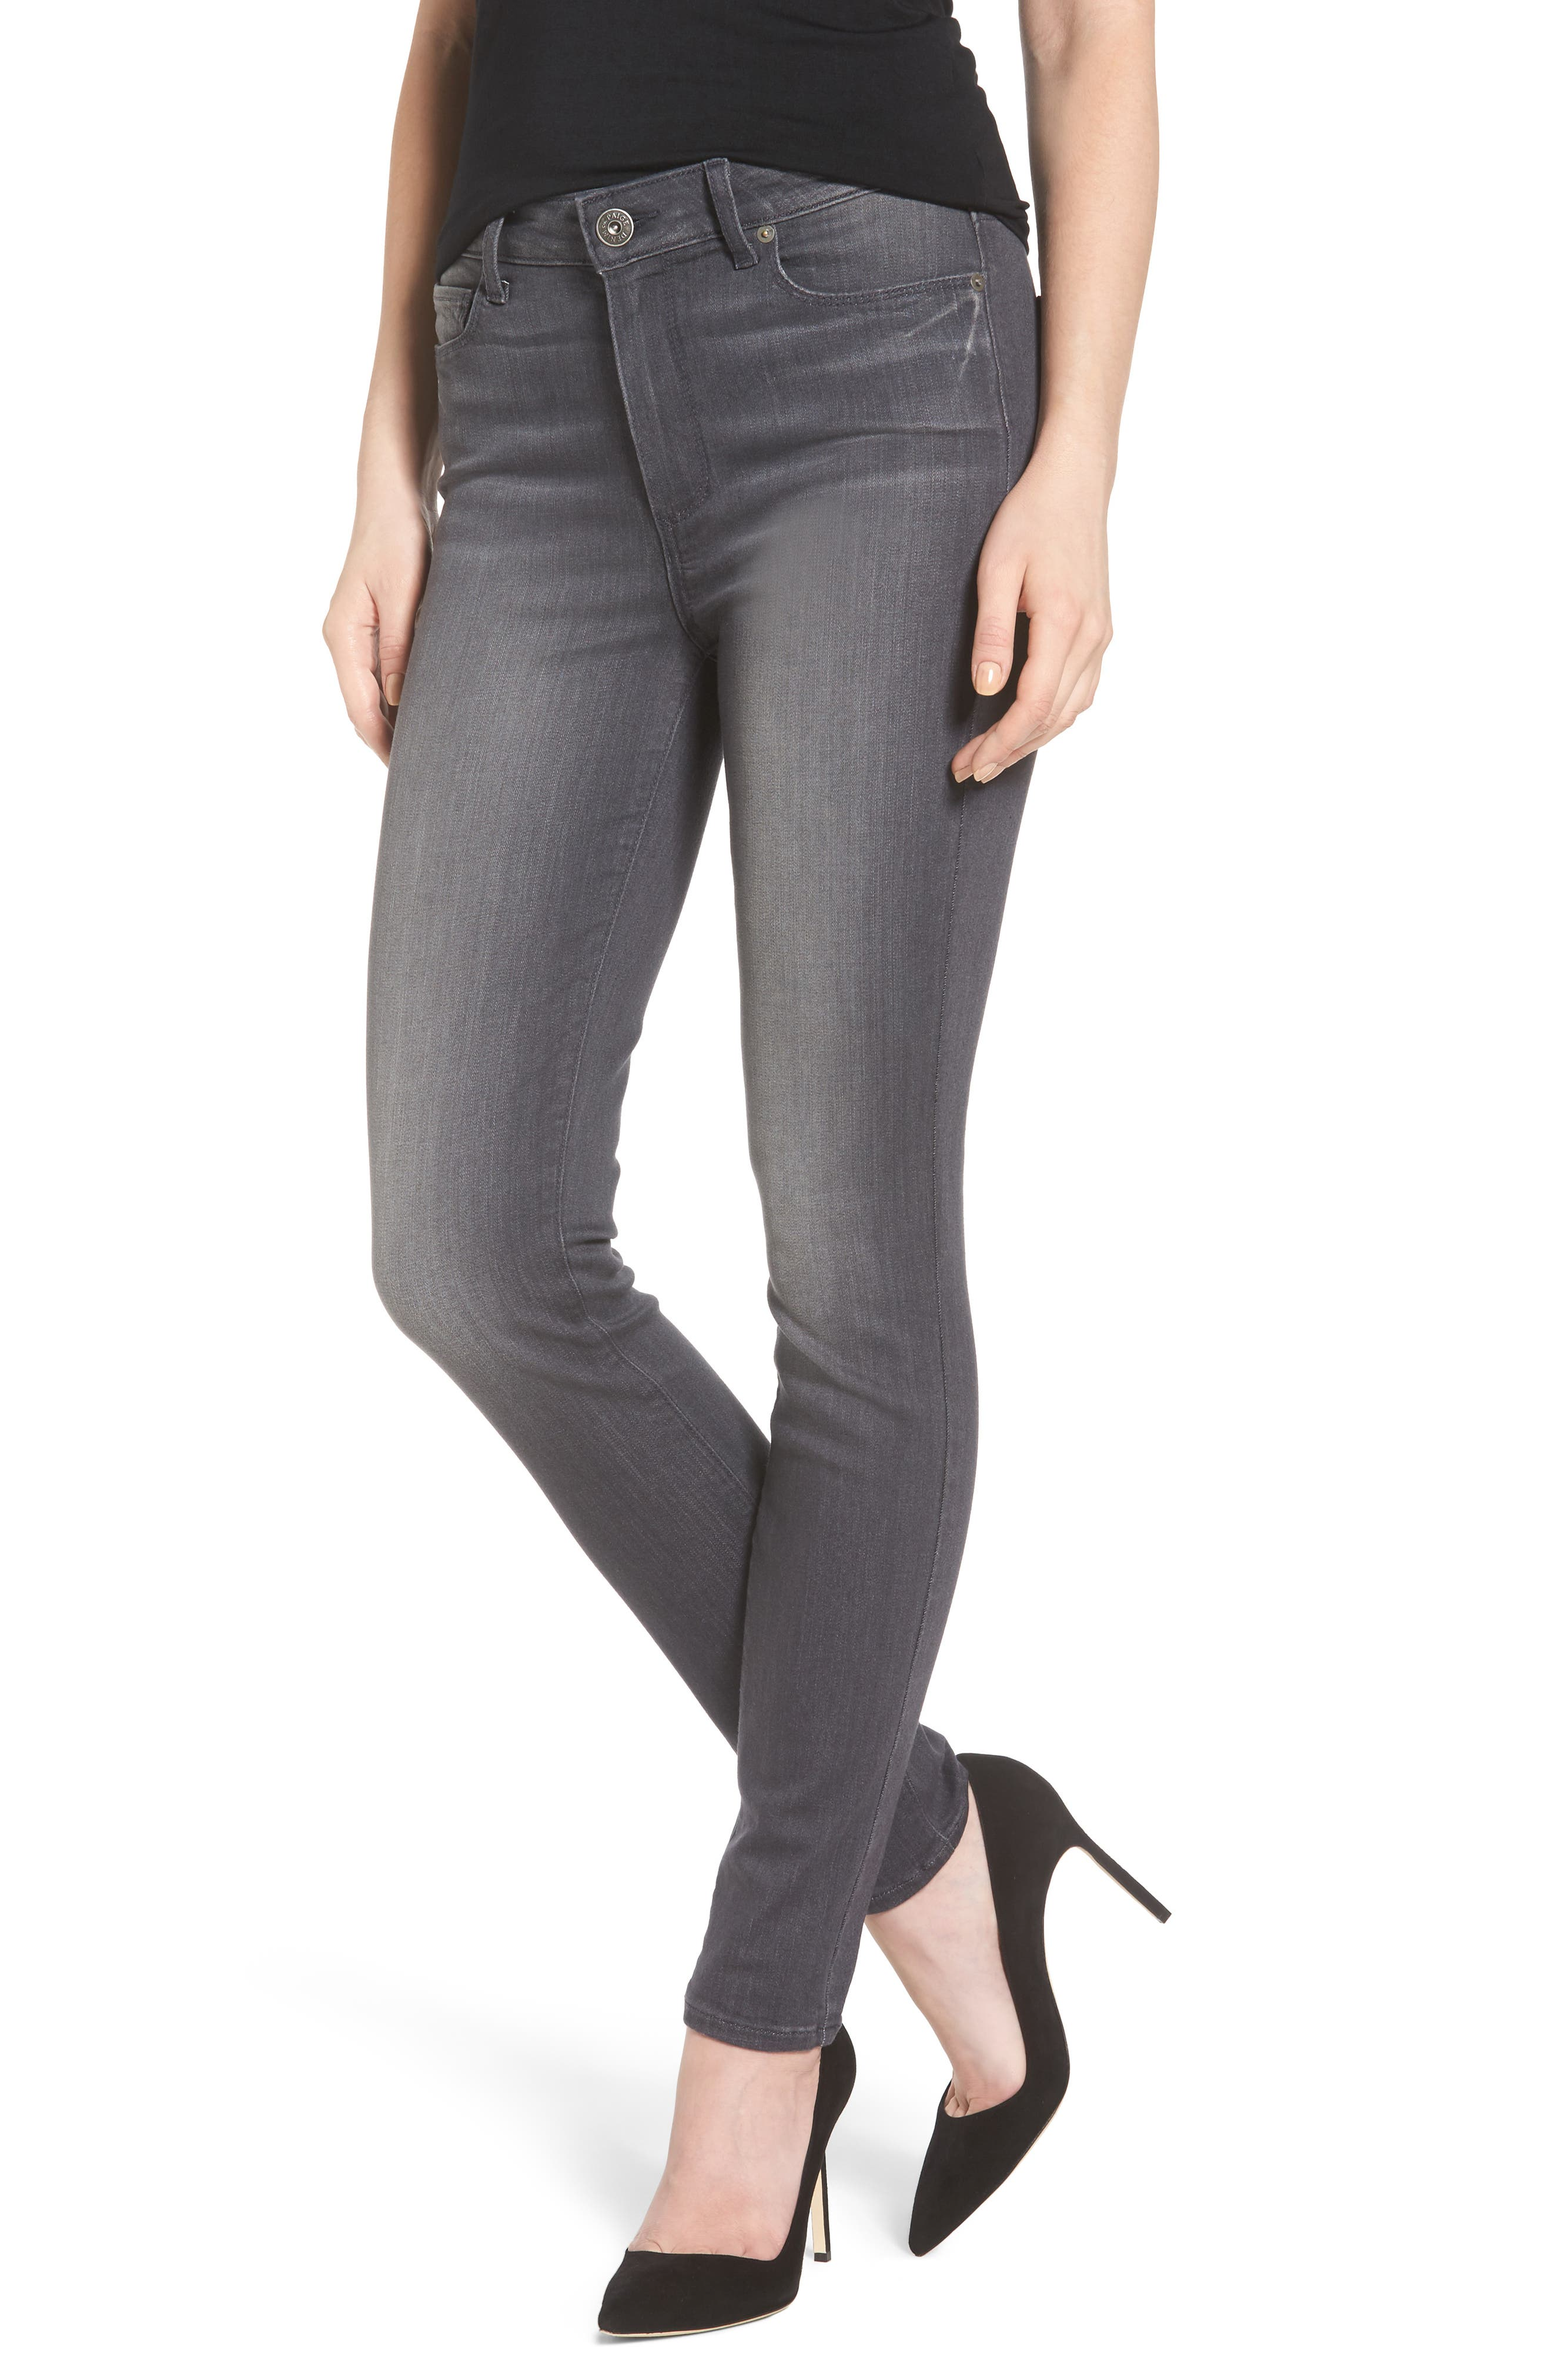 Transcend - Hoxton High Waist Ultra Skinny Jeans,                         Main,                         color, Summit Grey